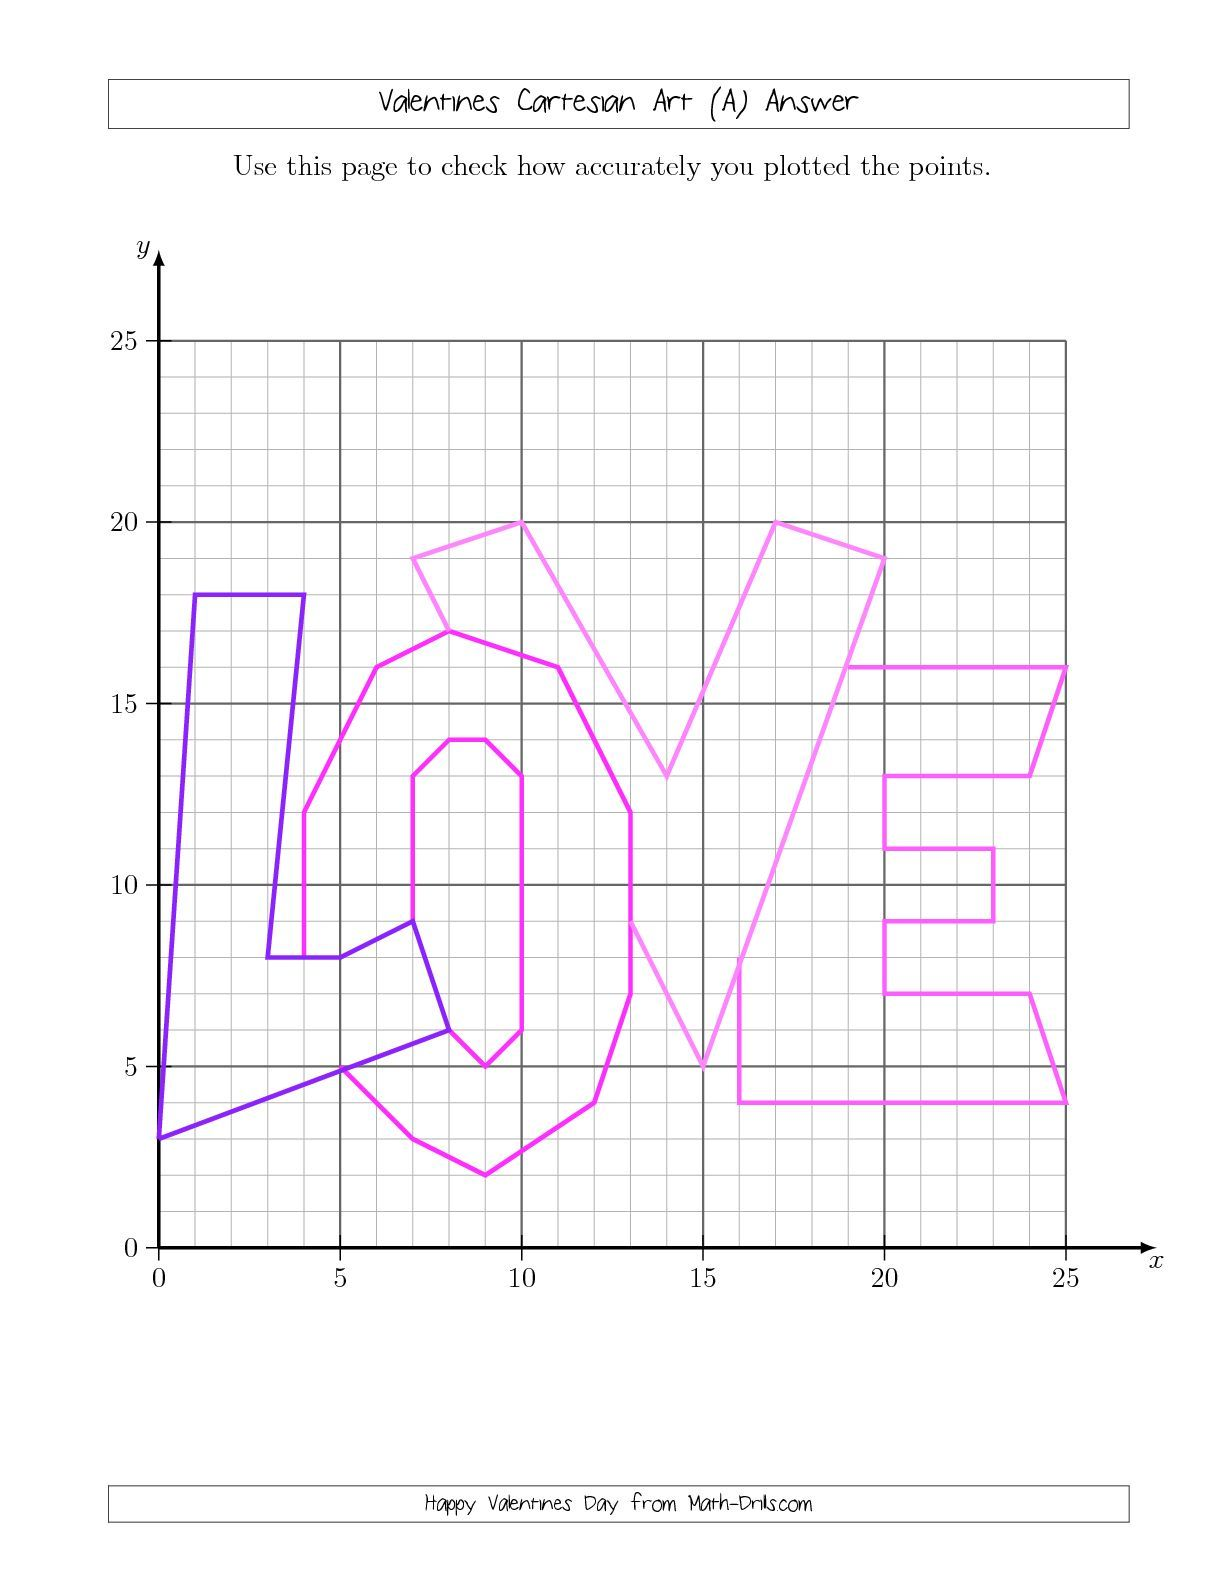 The Valentines Cartesian Art Love Math Worksheet From The Valentines